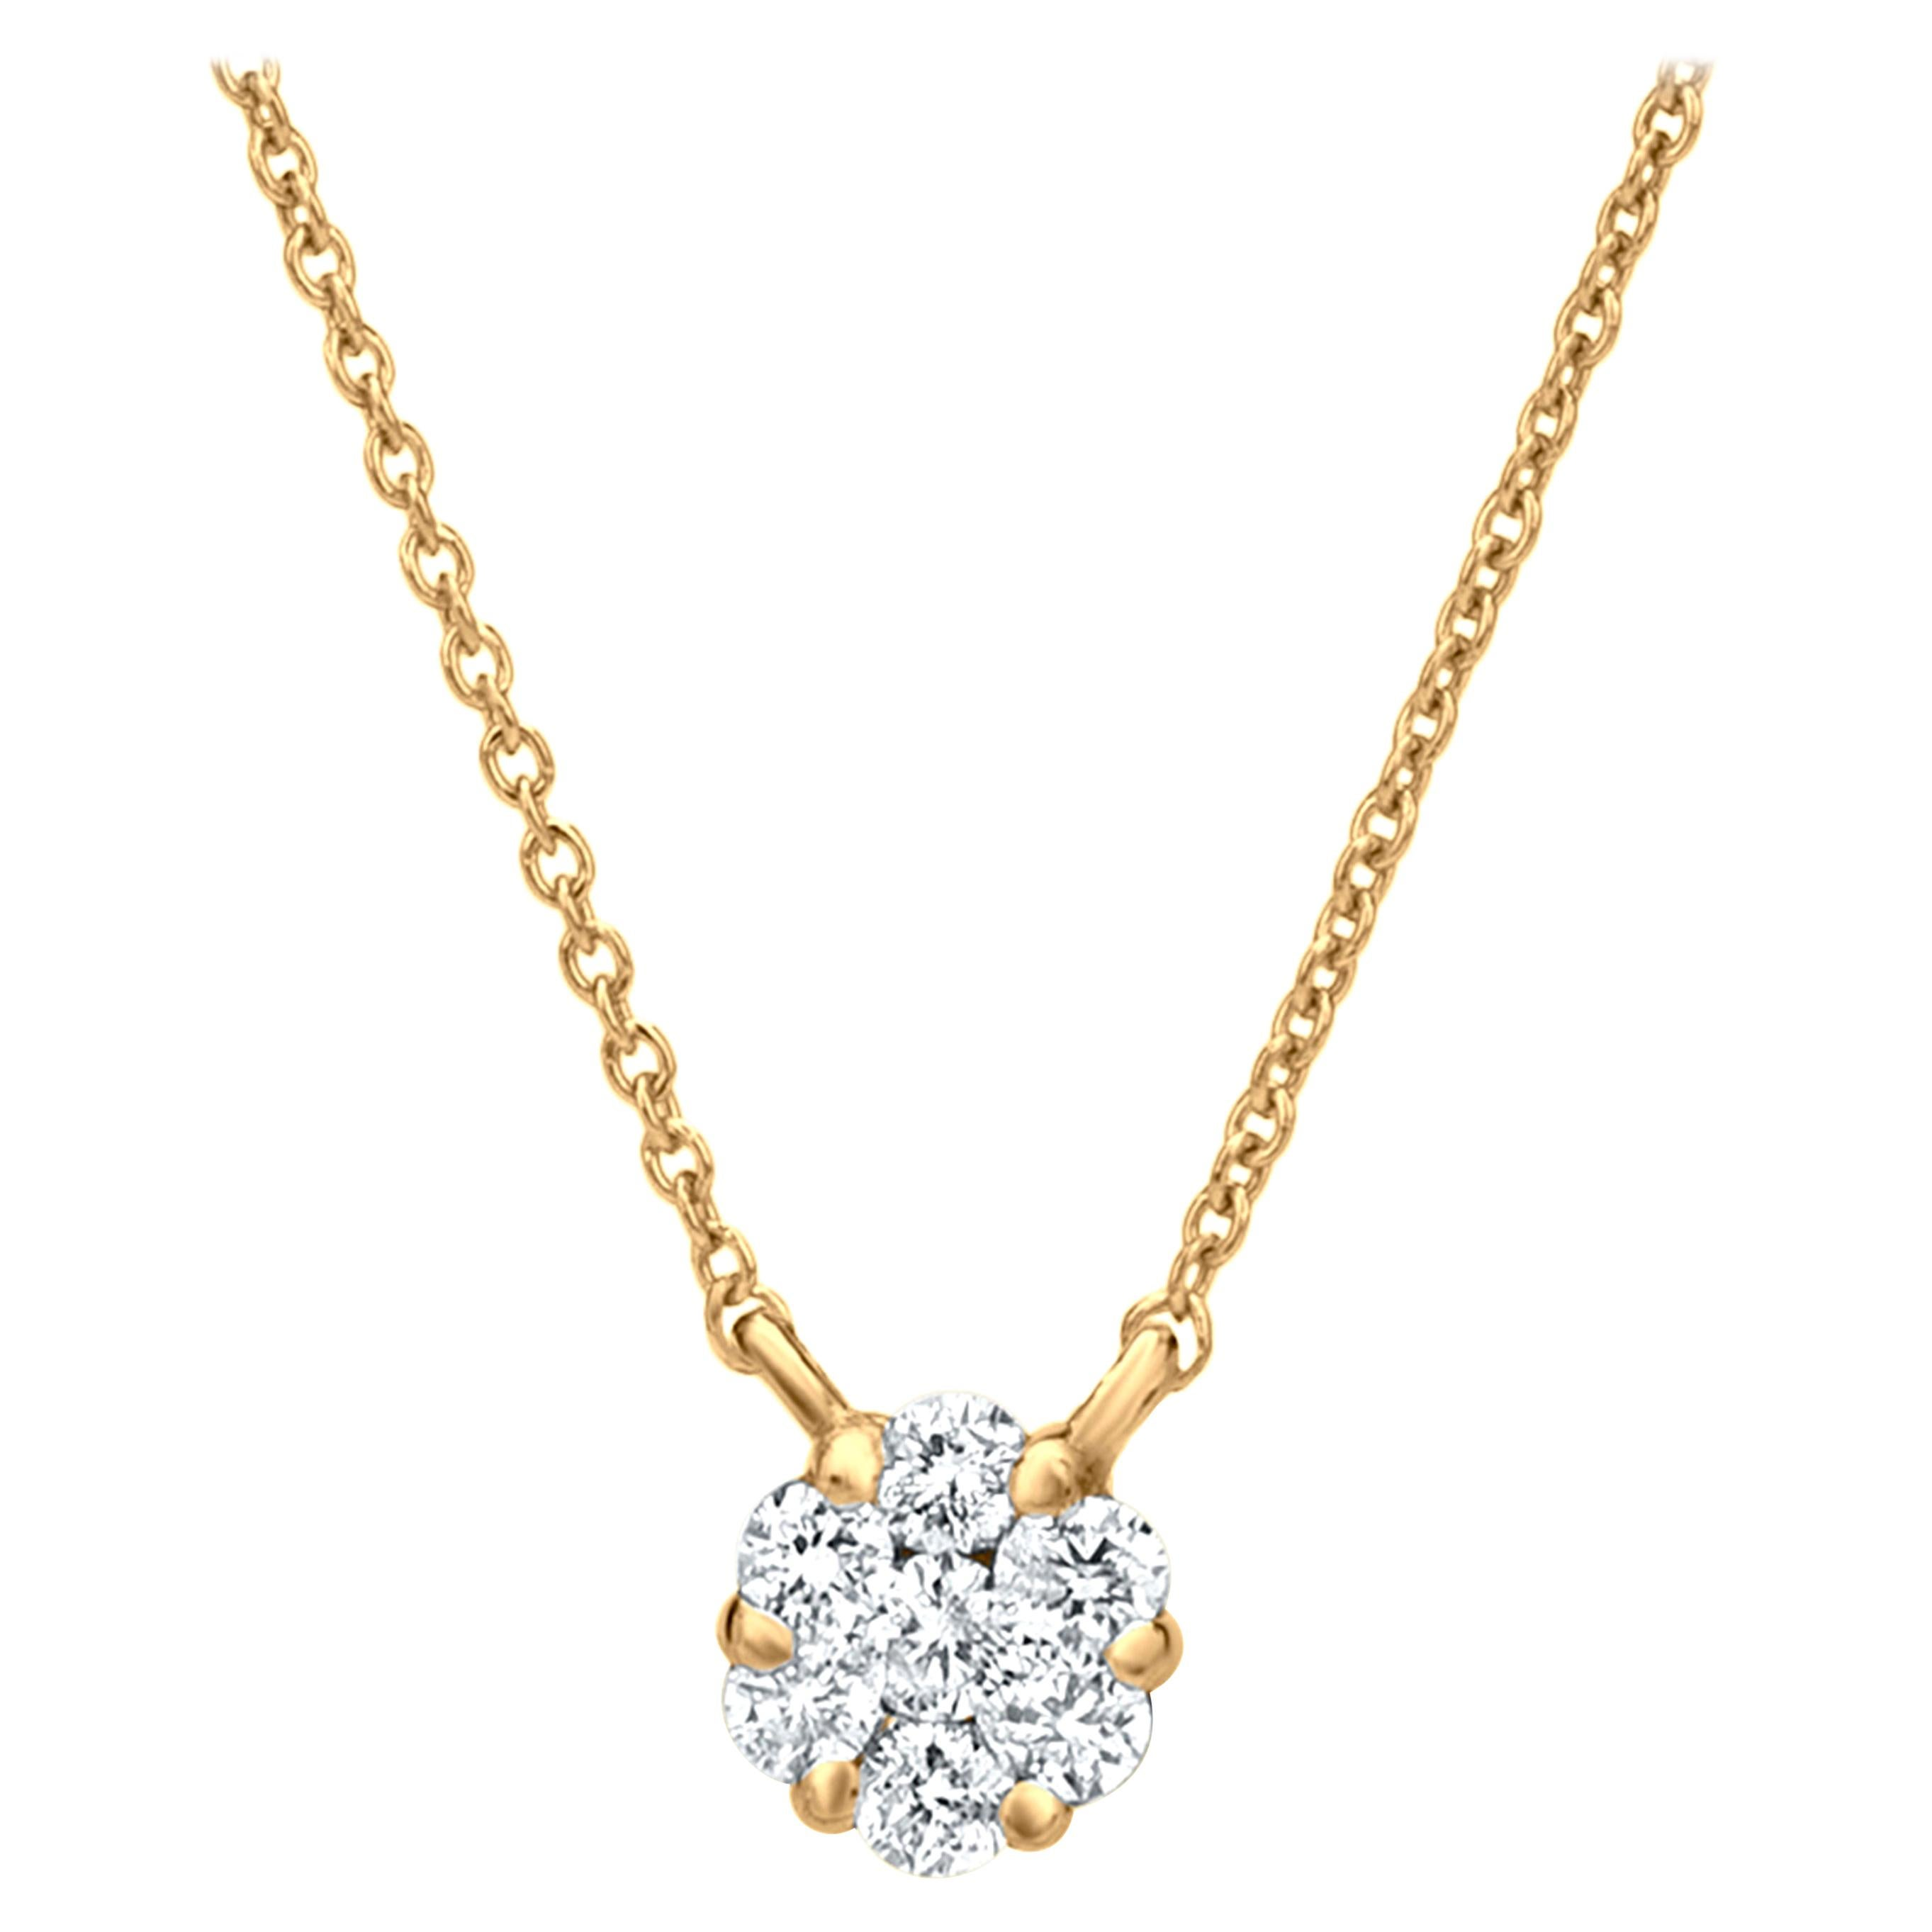 Cluster Diamond Pendant Necklace in 18K Yellow Gold